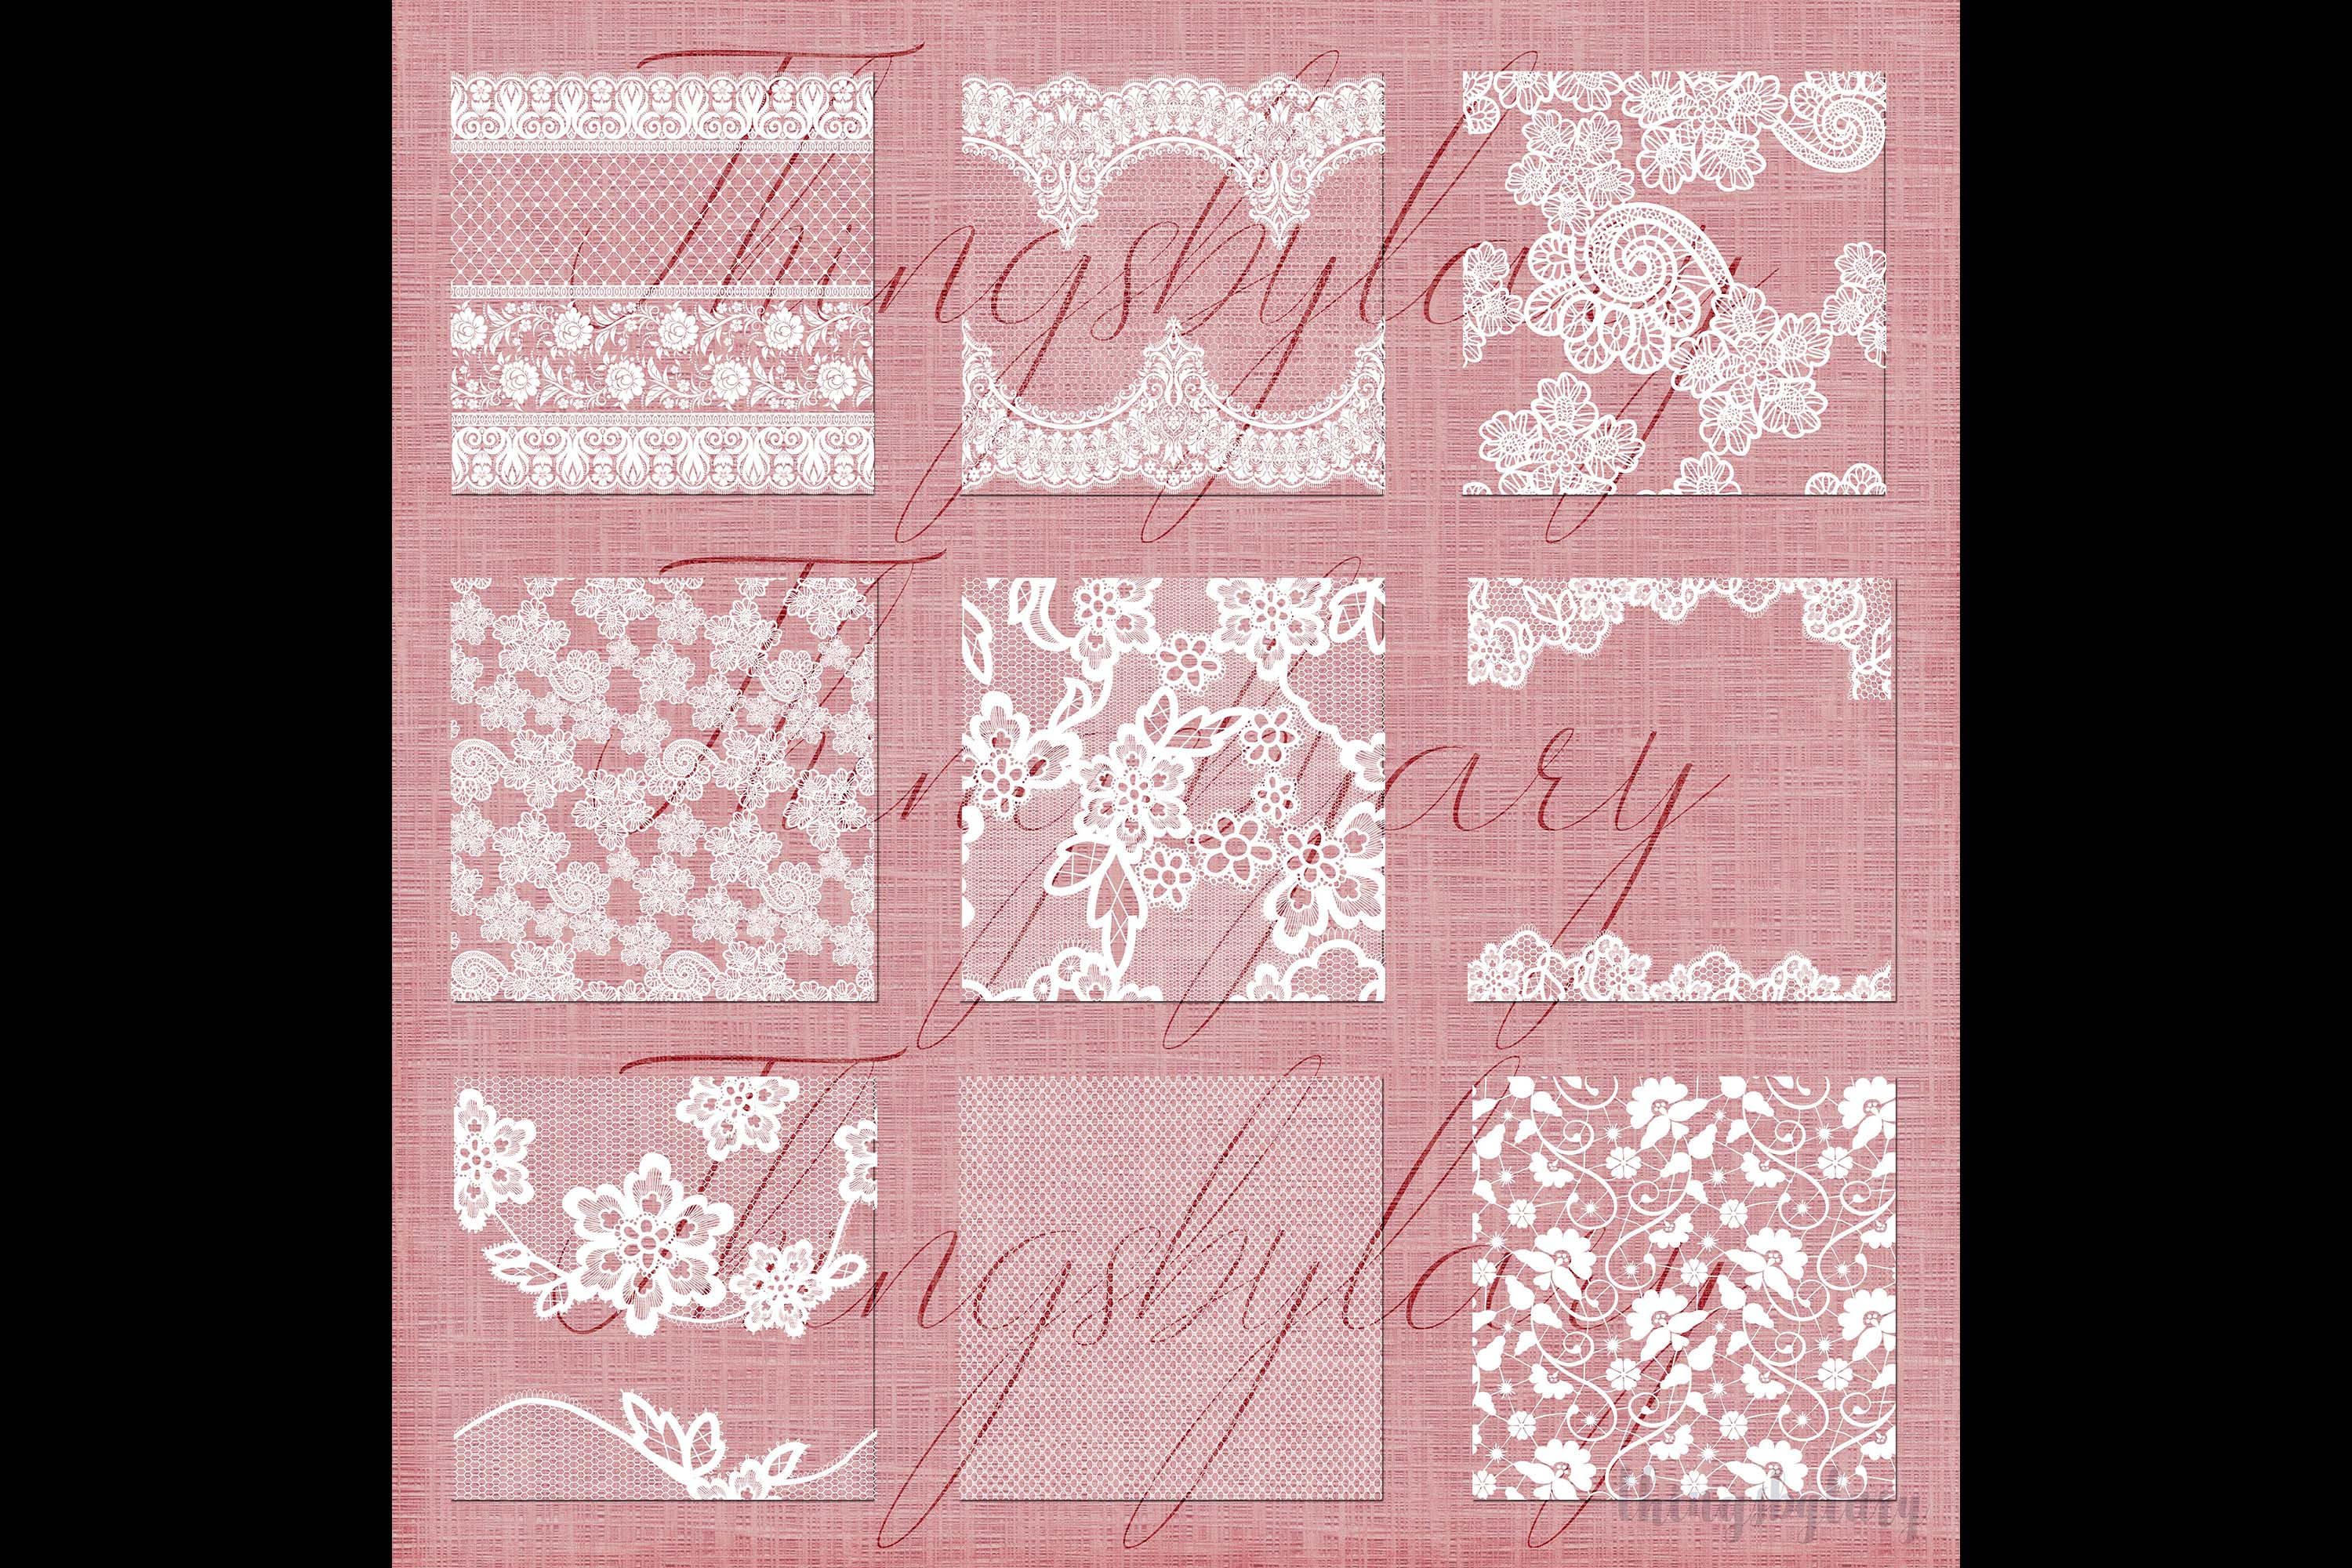 27 White Lace Border Frame Overlay Transparent Images PNG example image 8